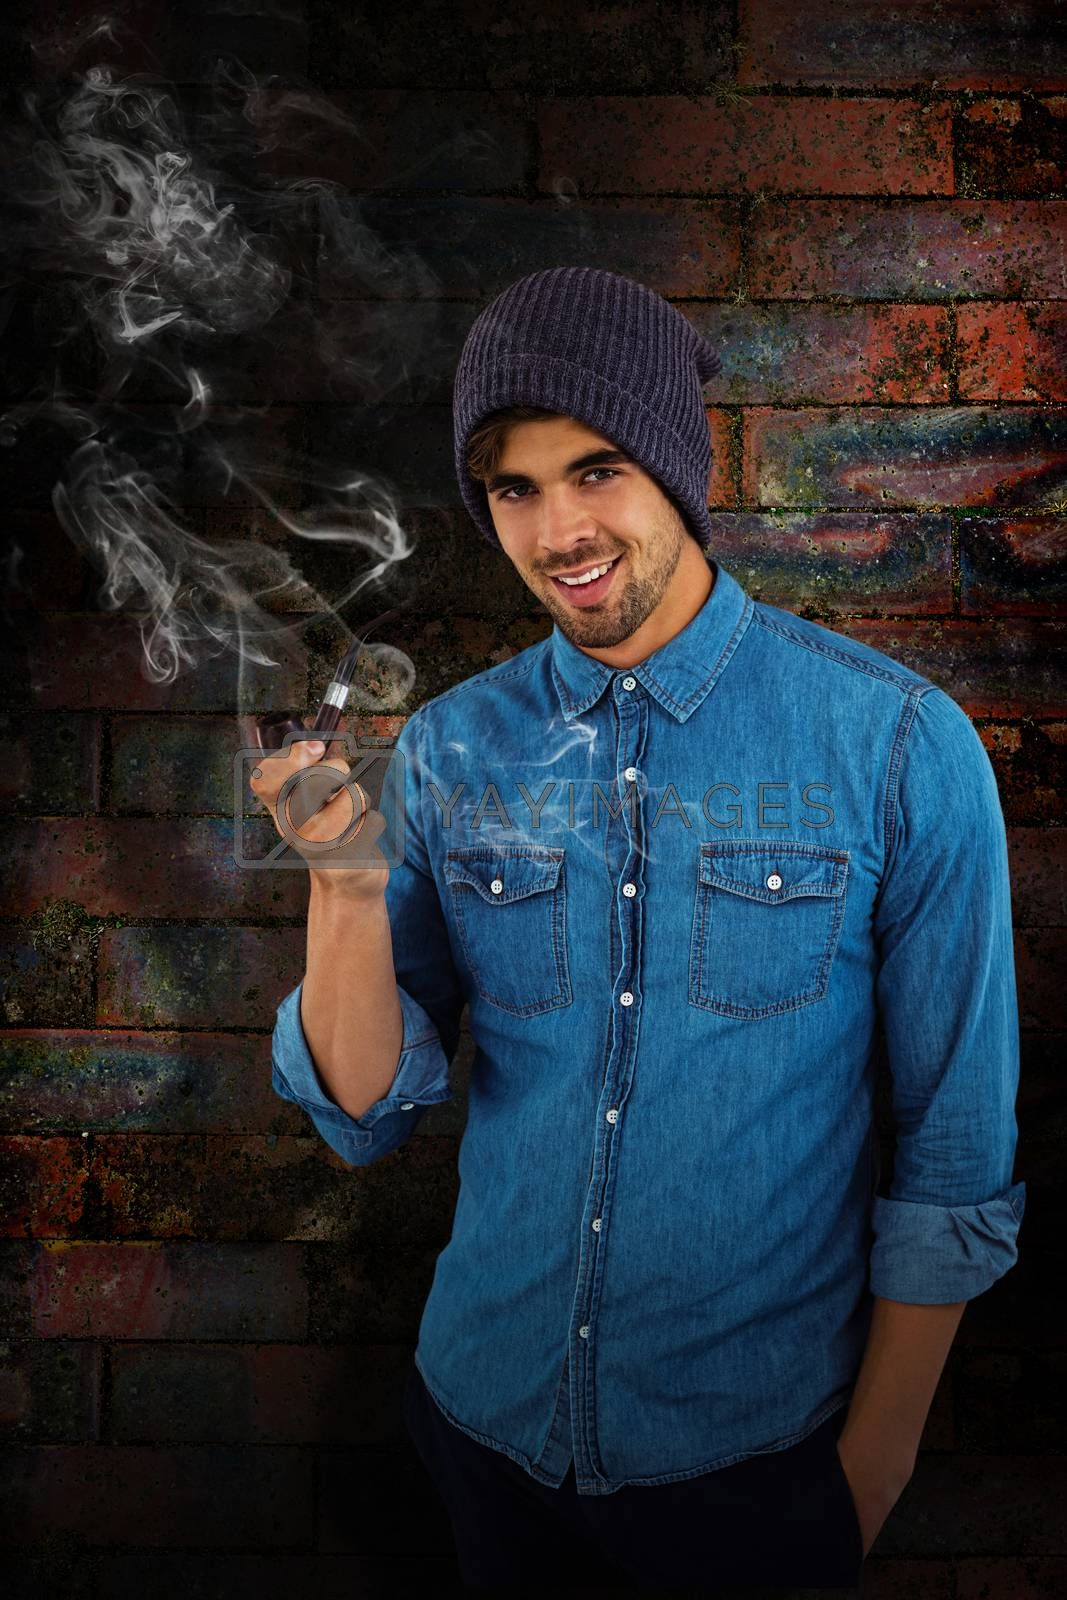 Portrait of hipster smiling while holding smoking pipe against texture of bricks wall